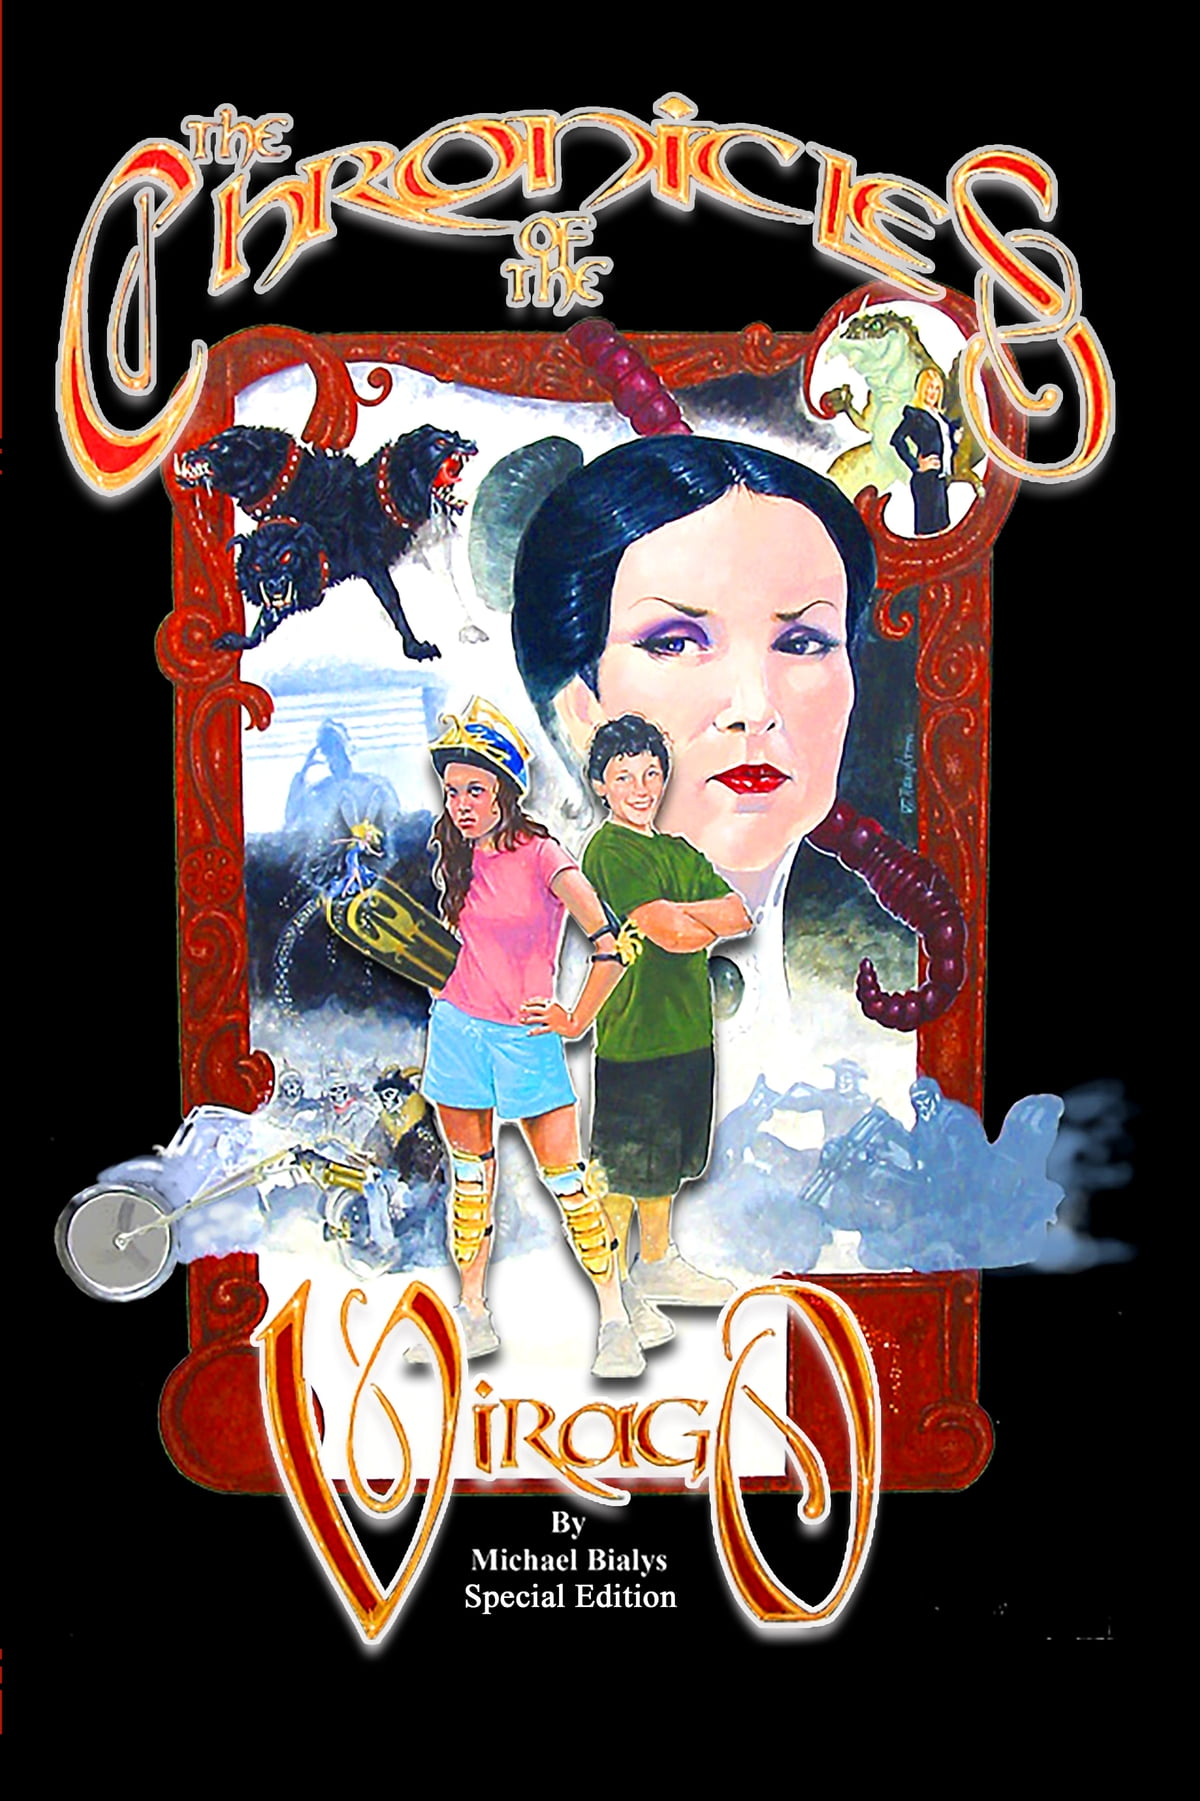 Download The Chronicles Of The Virago The Novus Book I By Michael Bialys